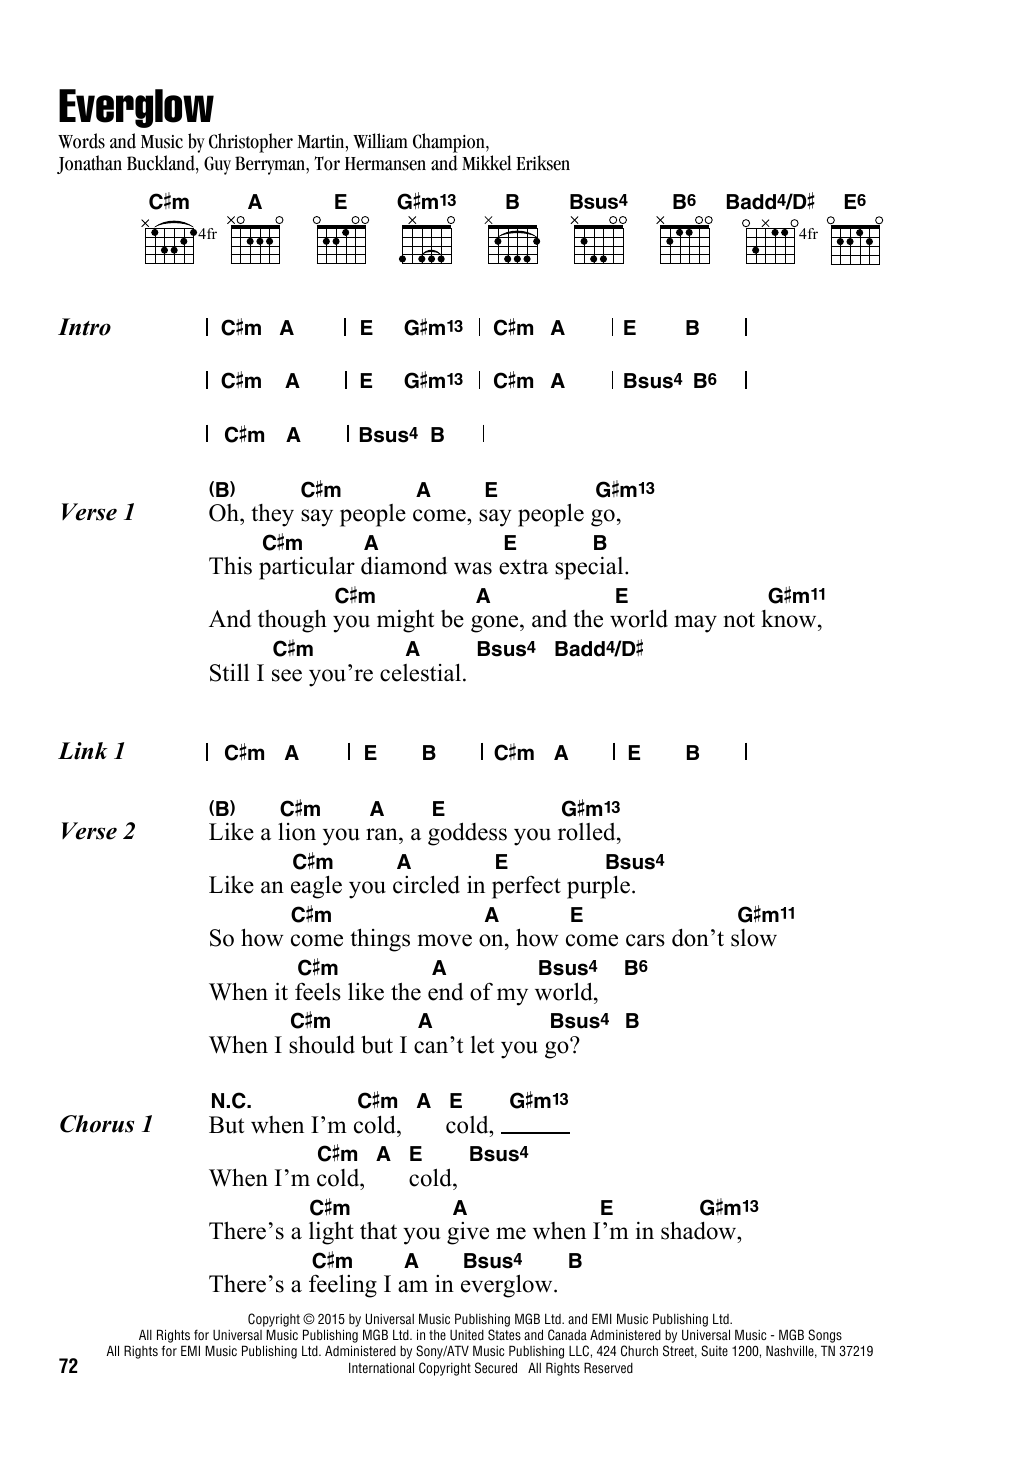 Everglow Sheet Music